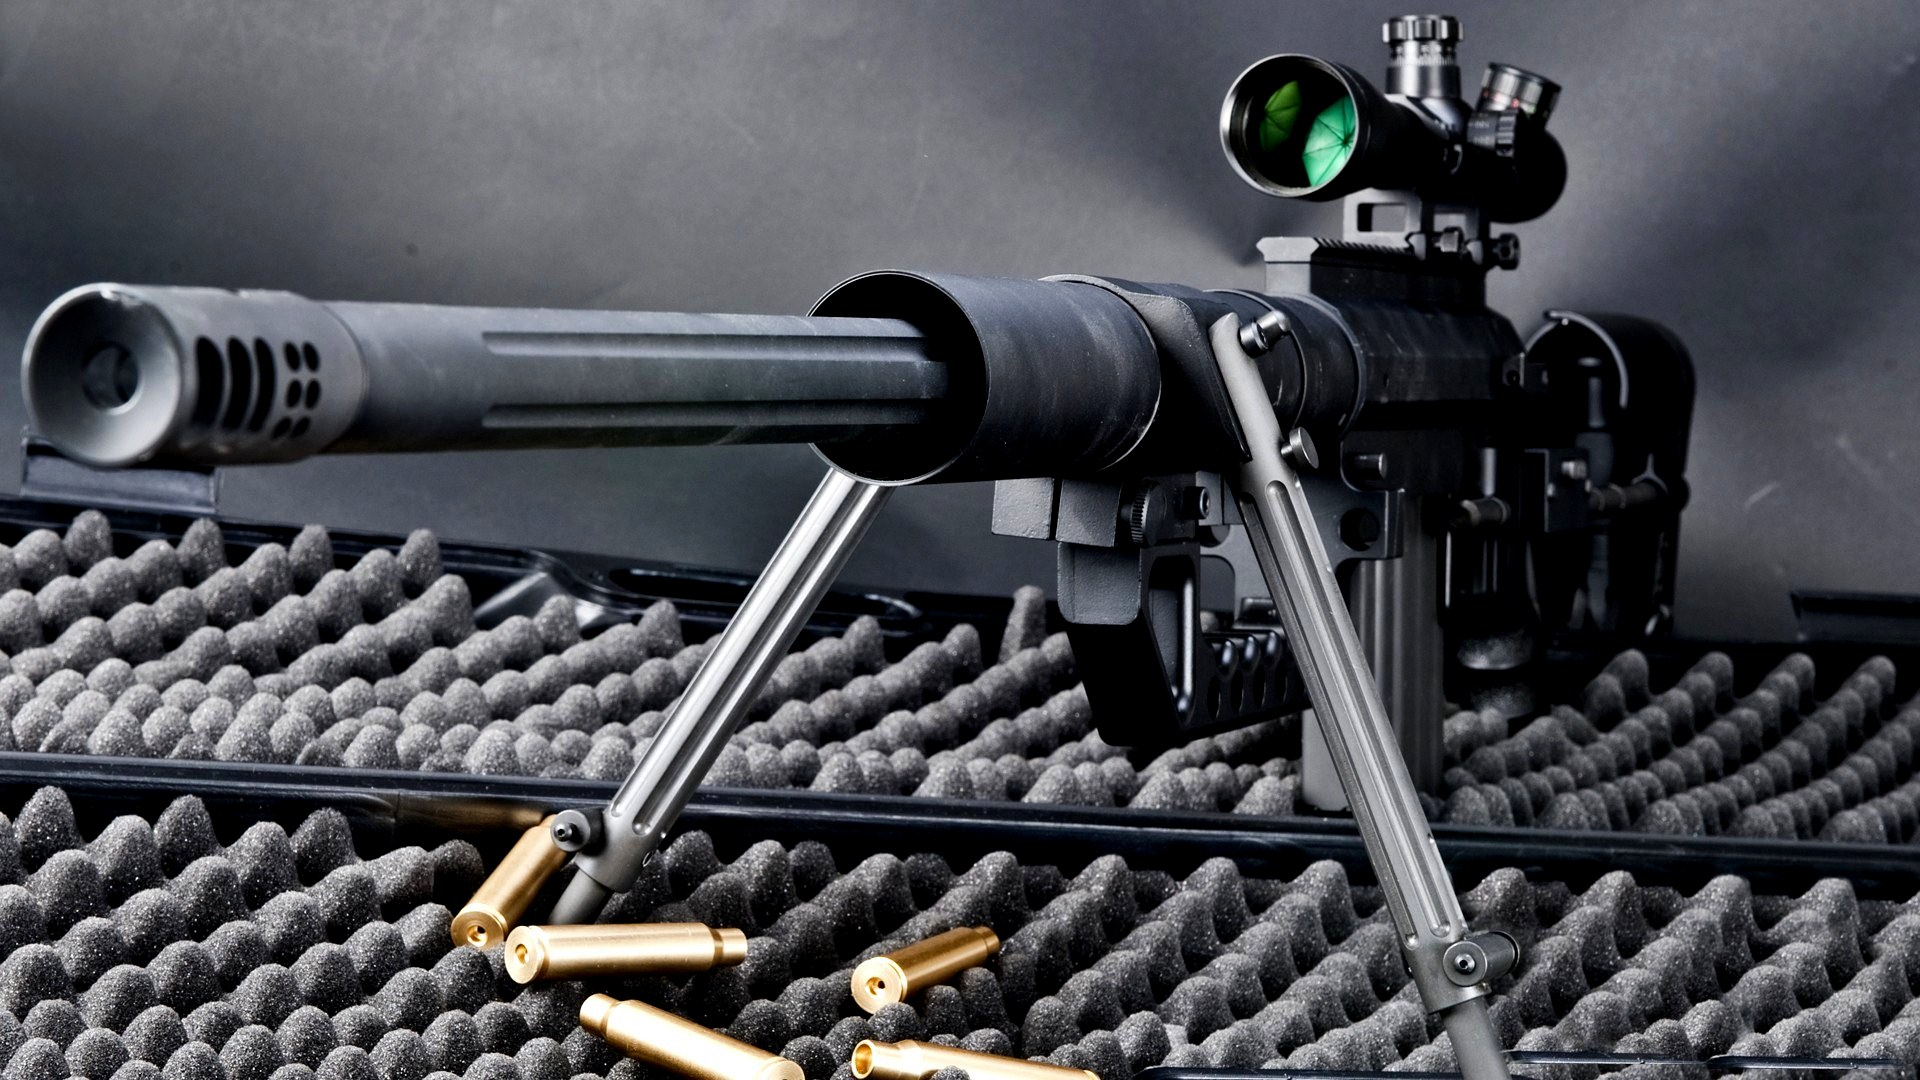 13 HD Sniper Rifle Guns Wallpapers   HDWallSourcecom 1920x1080